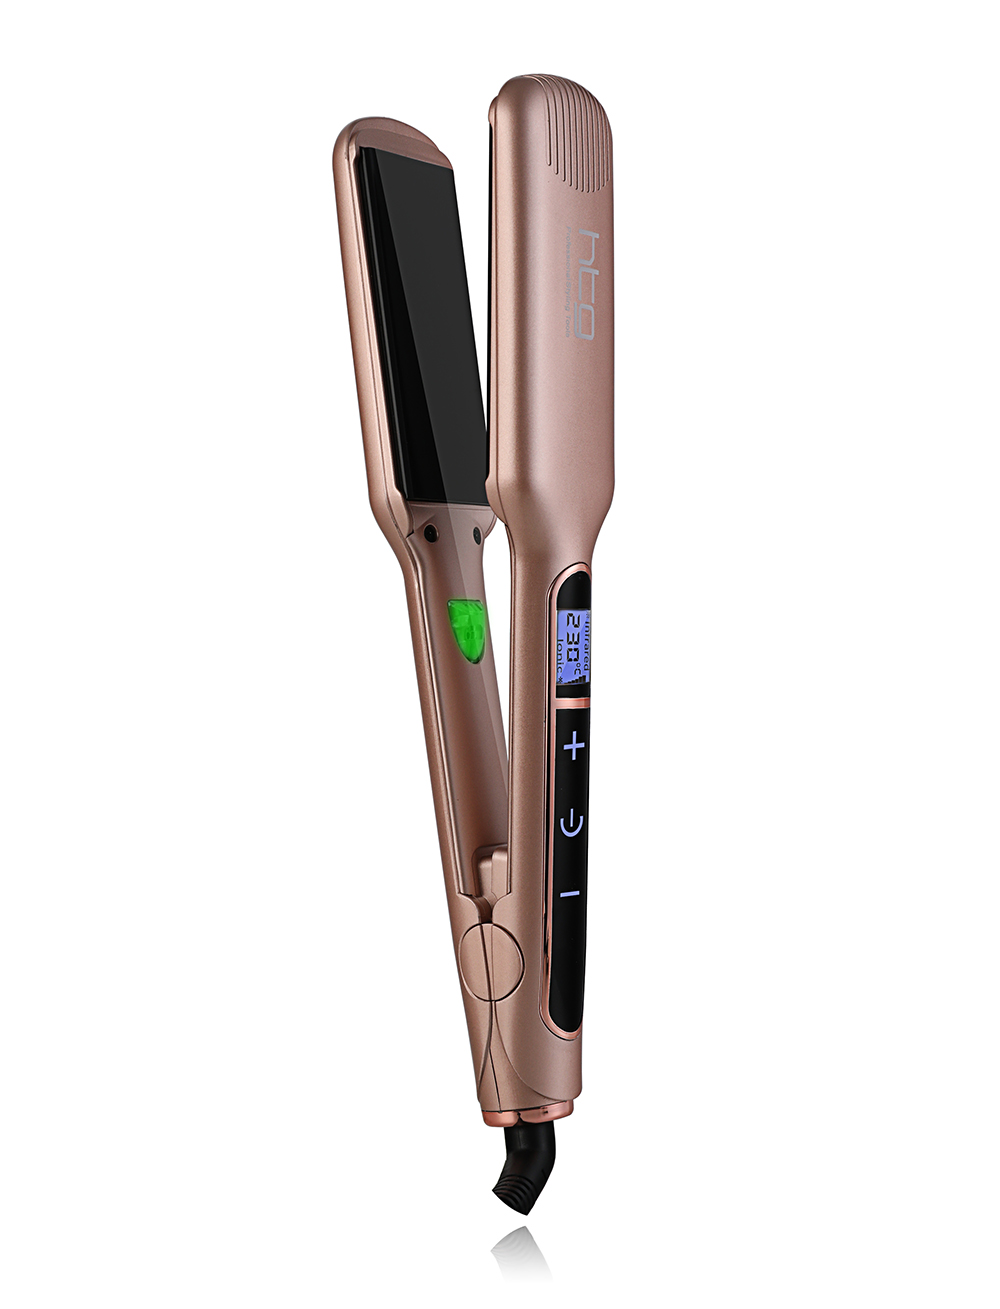 HTG Pro Hair straightener iron Flat Negative ION Ionic Hair Straightening +touch screen infrared Keratin Technology wide plates mch flexible 3d floating ceramic wide plates flat iron far infrared hair straightener straightening curling with negative ions